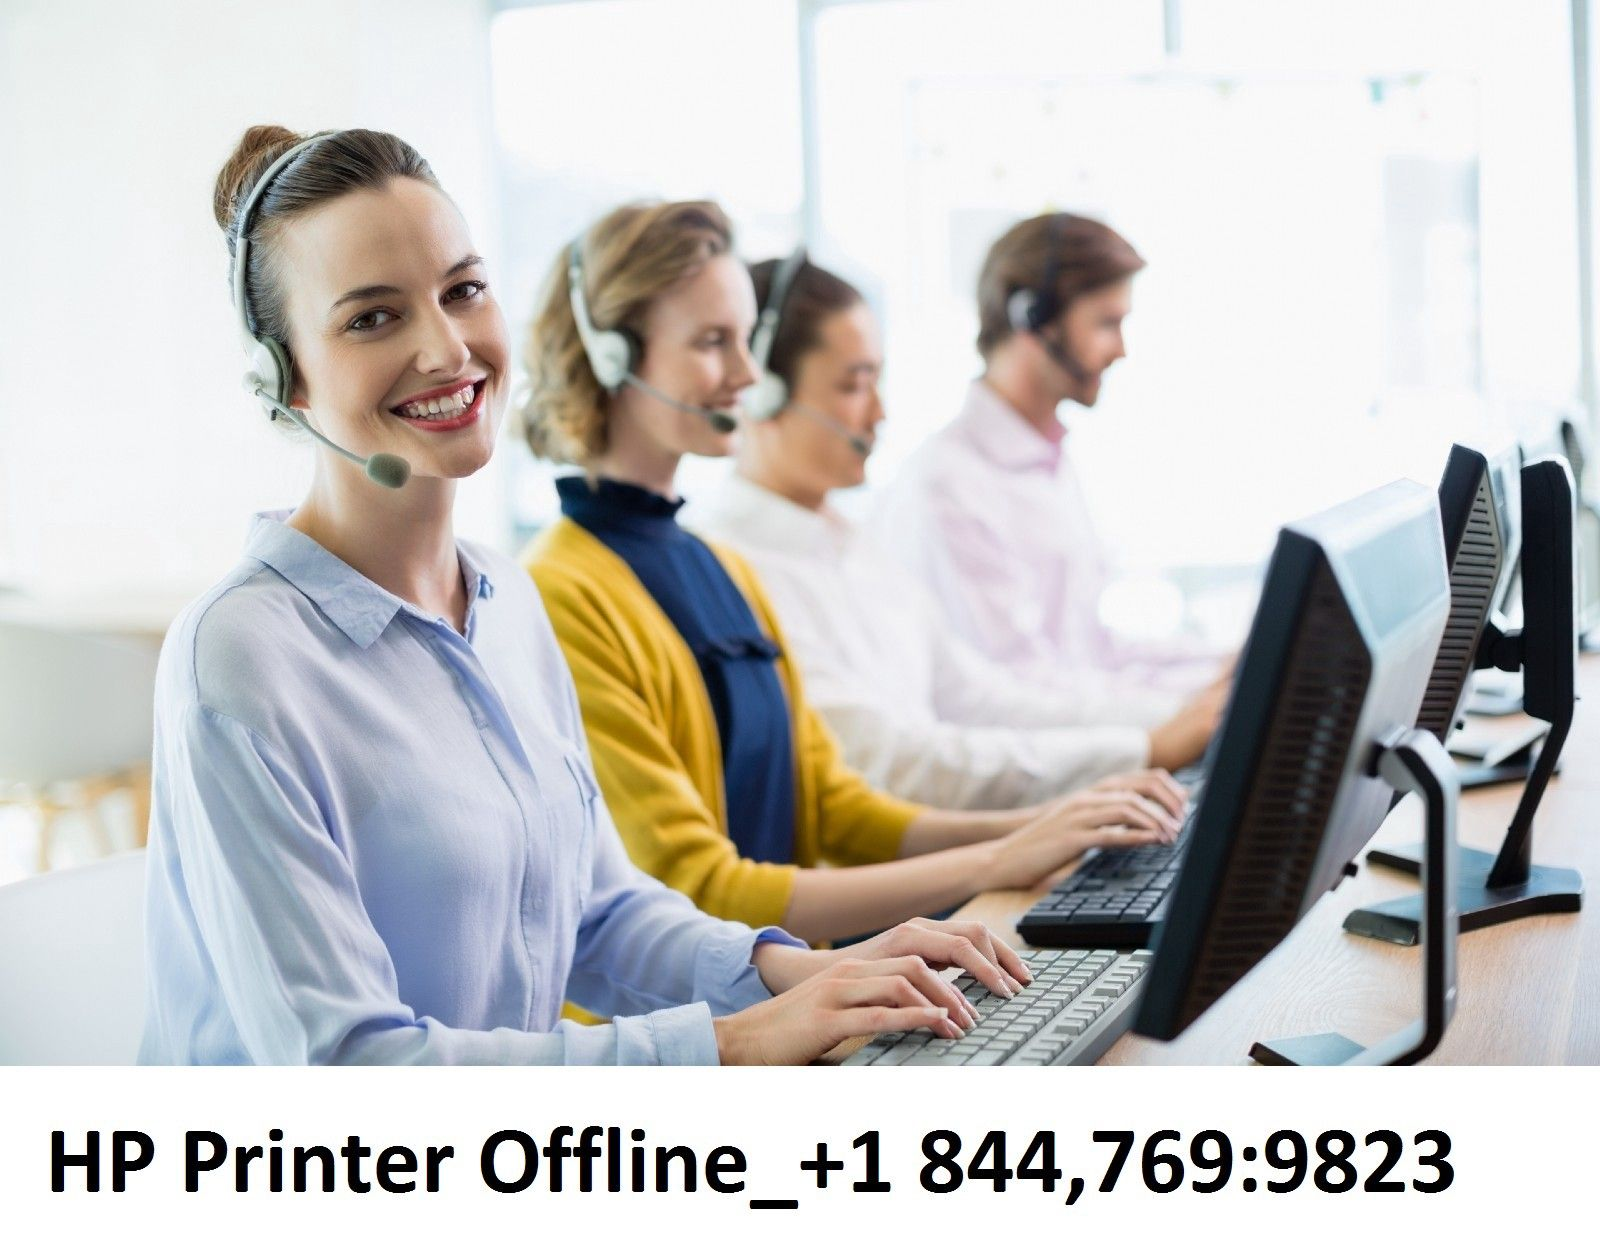 HP Printer Offline +1*844*769*9823